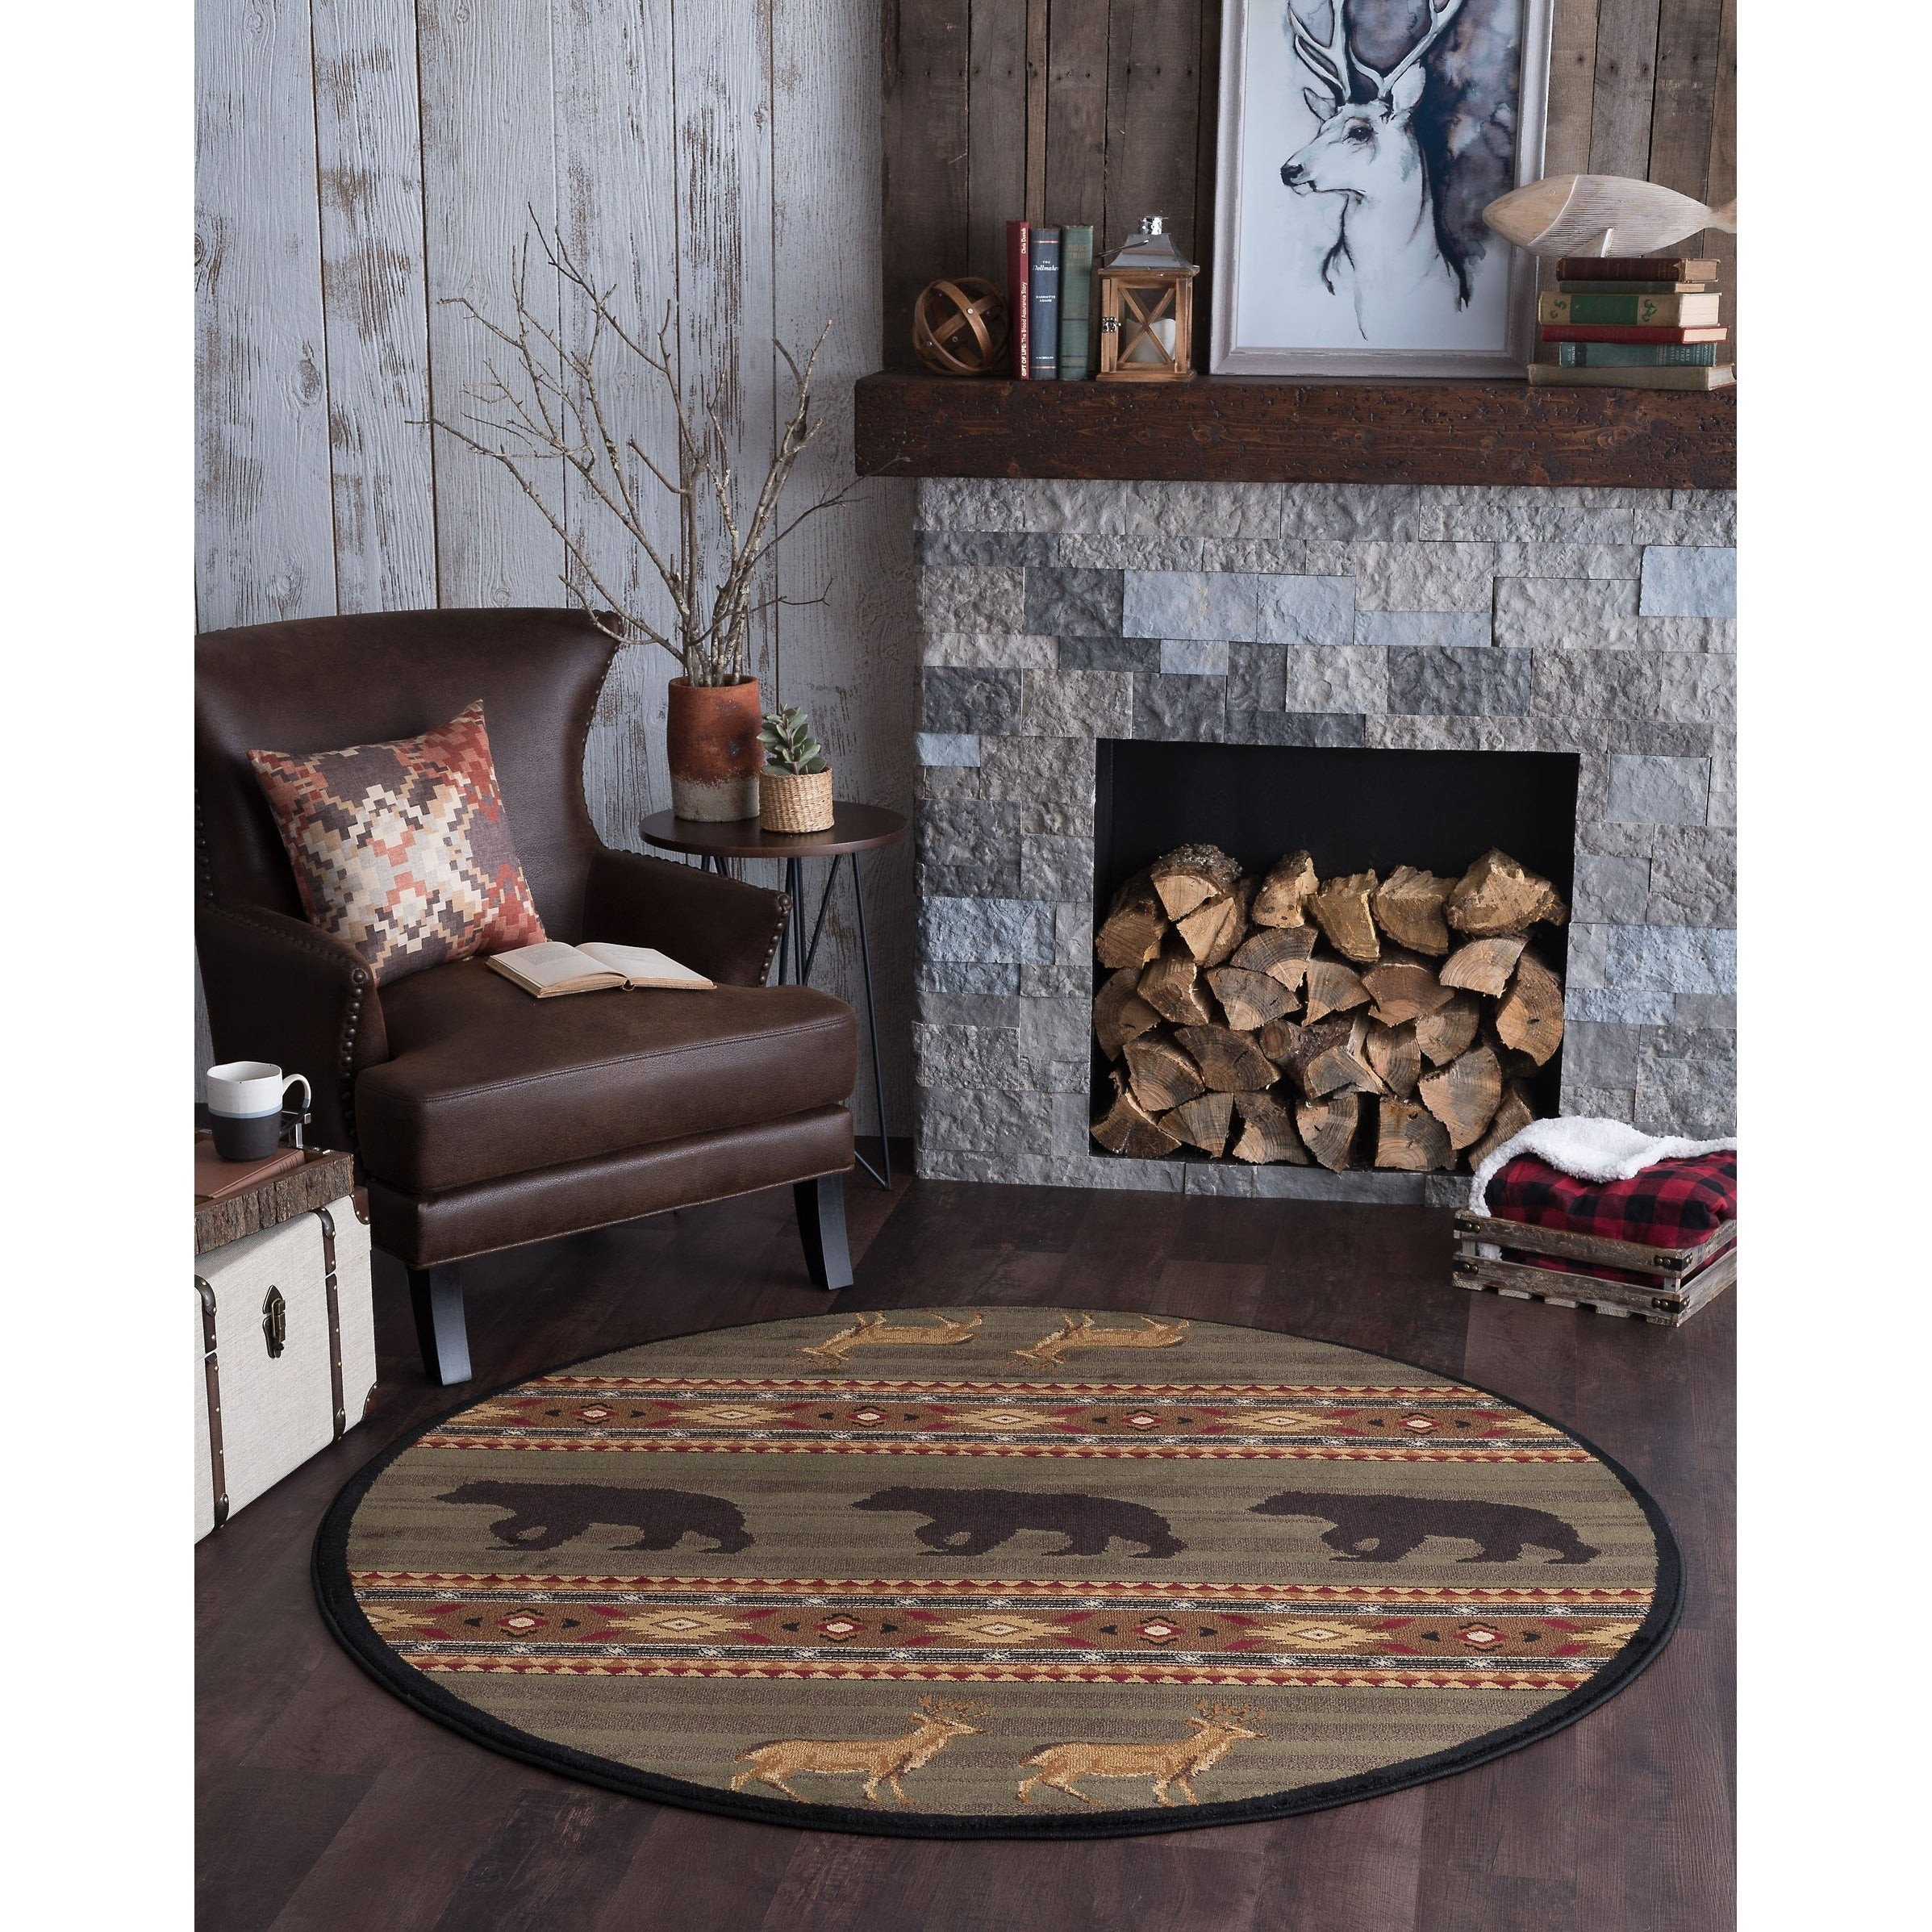 Bedroom area Rug Placement Best Of Alise Rugs Natural Lodge Novelty Lodge Round area Rug 7 10 X 7 10